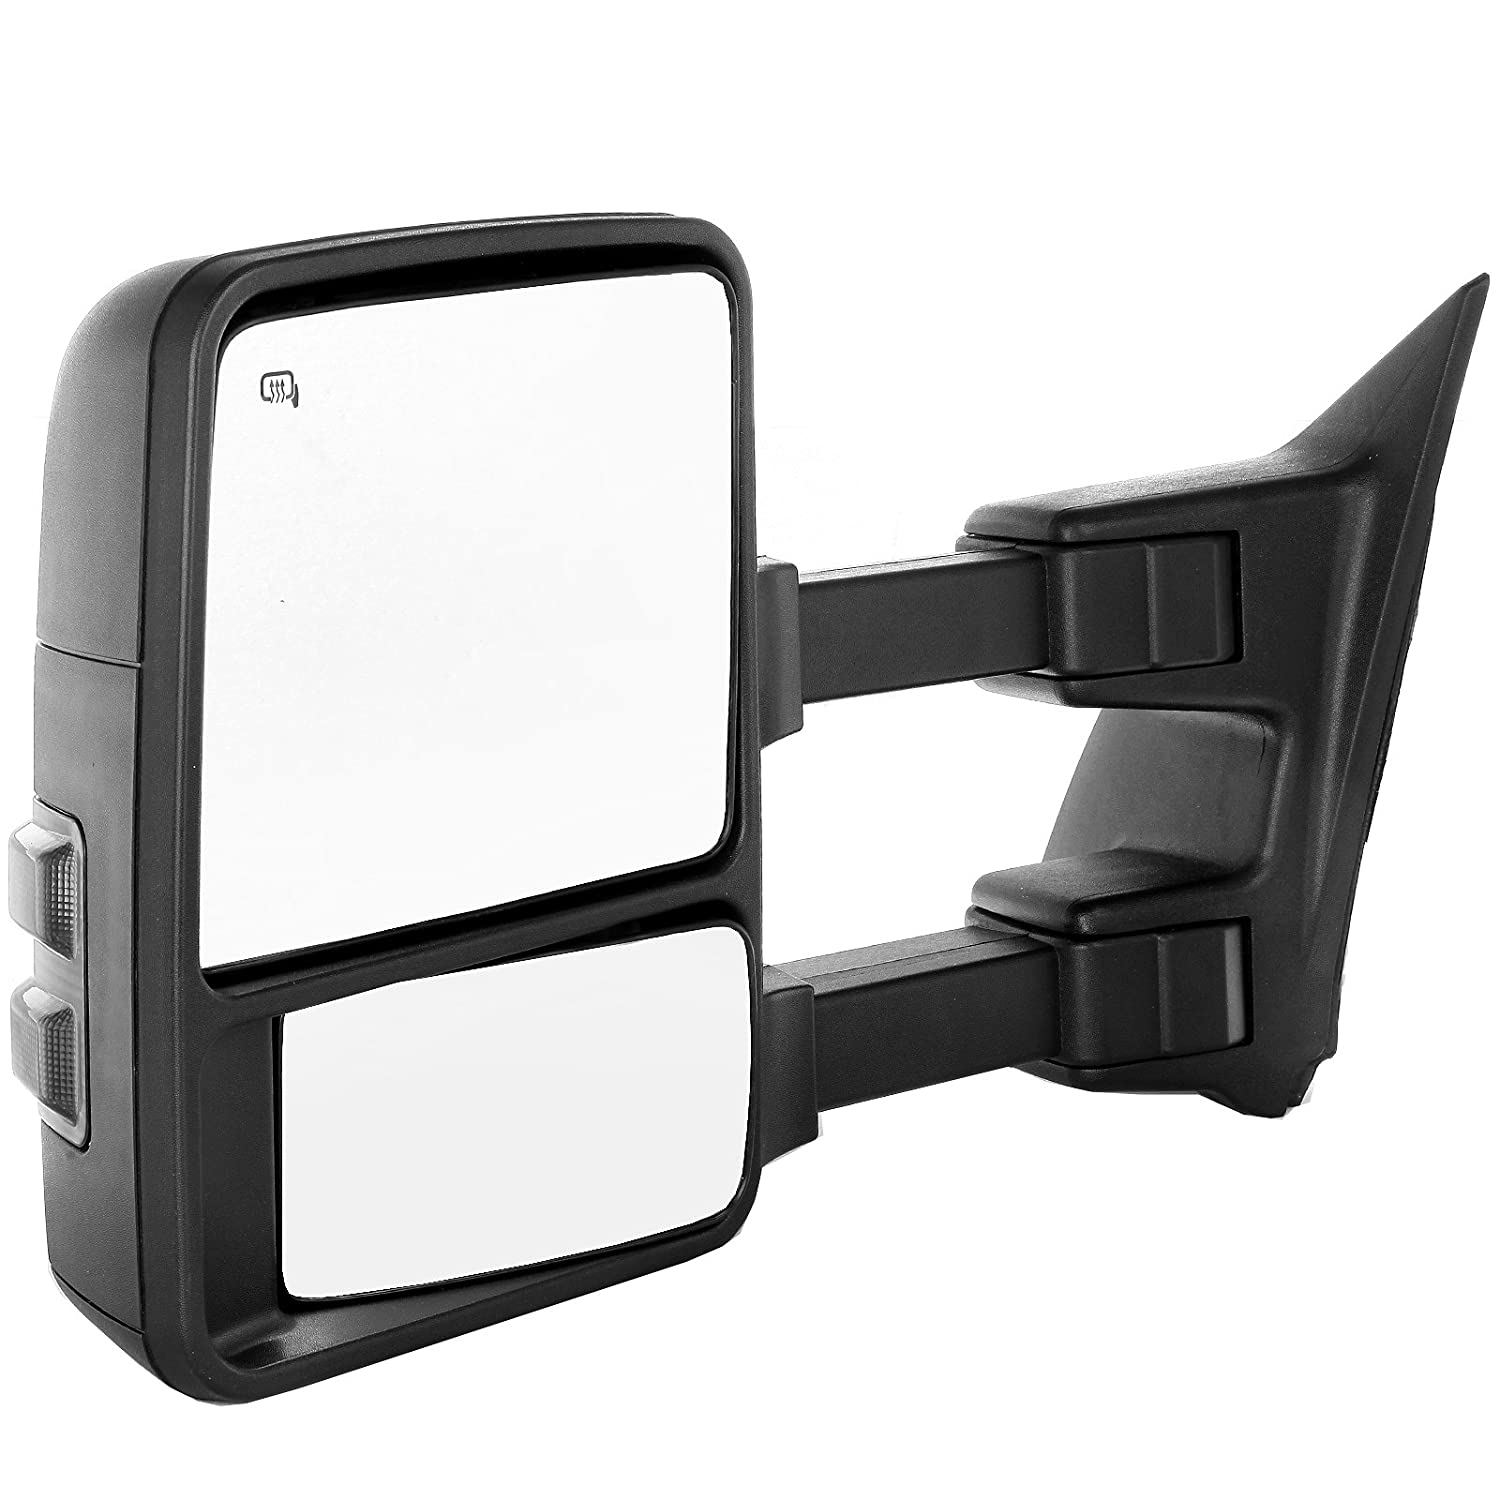 Towing Mirror by ECCPP Pair Side Mirror Replacement for 1999-2002 Ford F250 F350 F450 F550 Super Duty with Power Heated Telescopic Manual-Folding Texture Black